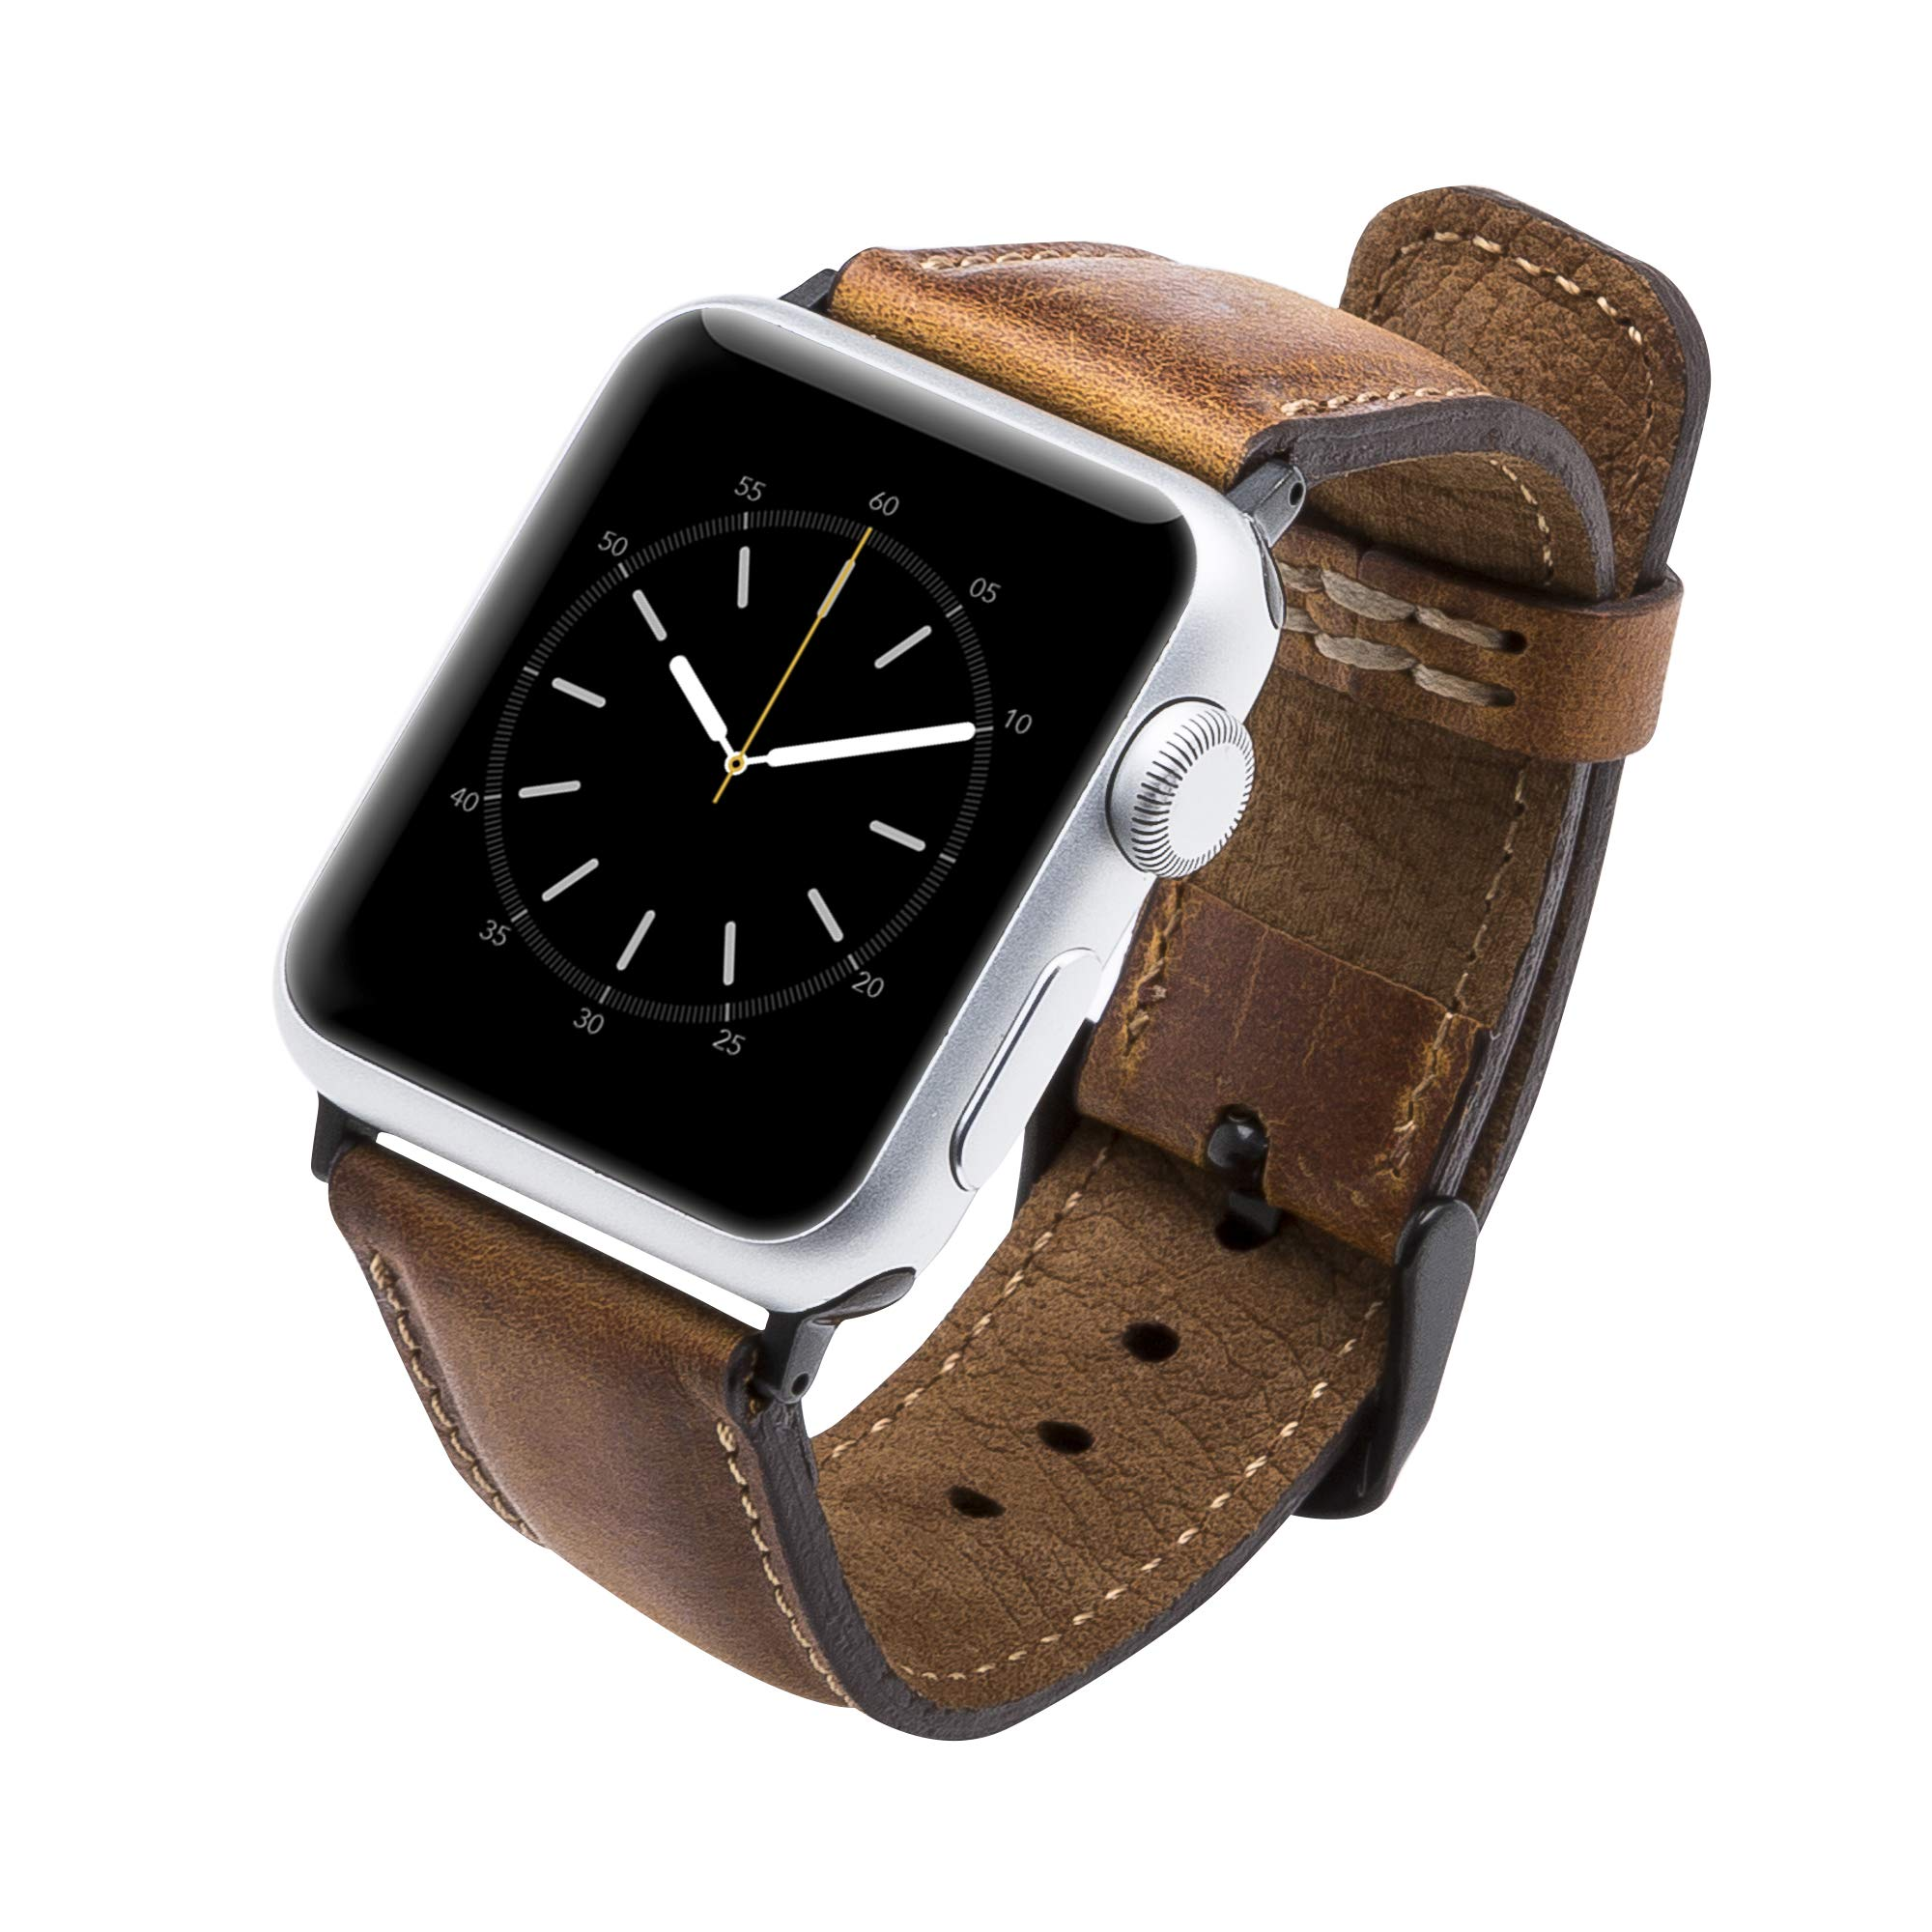 Venito Tuscany Handmade Premium Leather Watch Band Strap Compatible with The Newest Apple Watch iwatch Series 5 as Well as Series 1,2,3, 4 (Antique Brown w/Black Stainless Steel Hardware, 38-40mm) by Venito